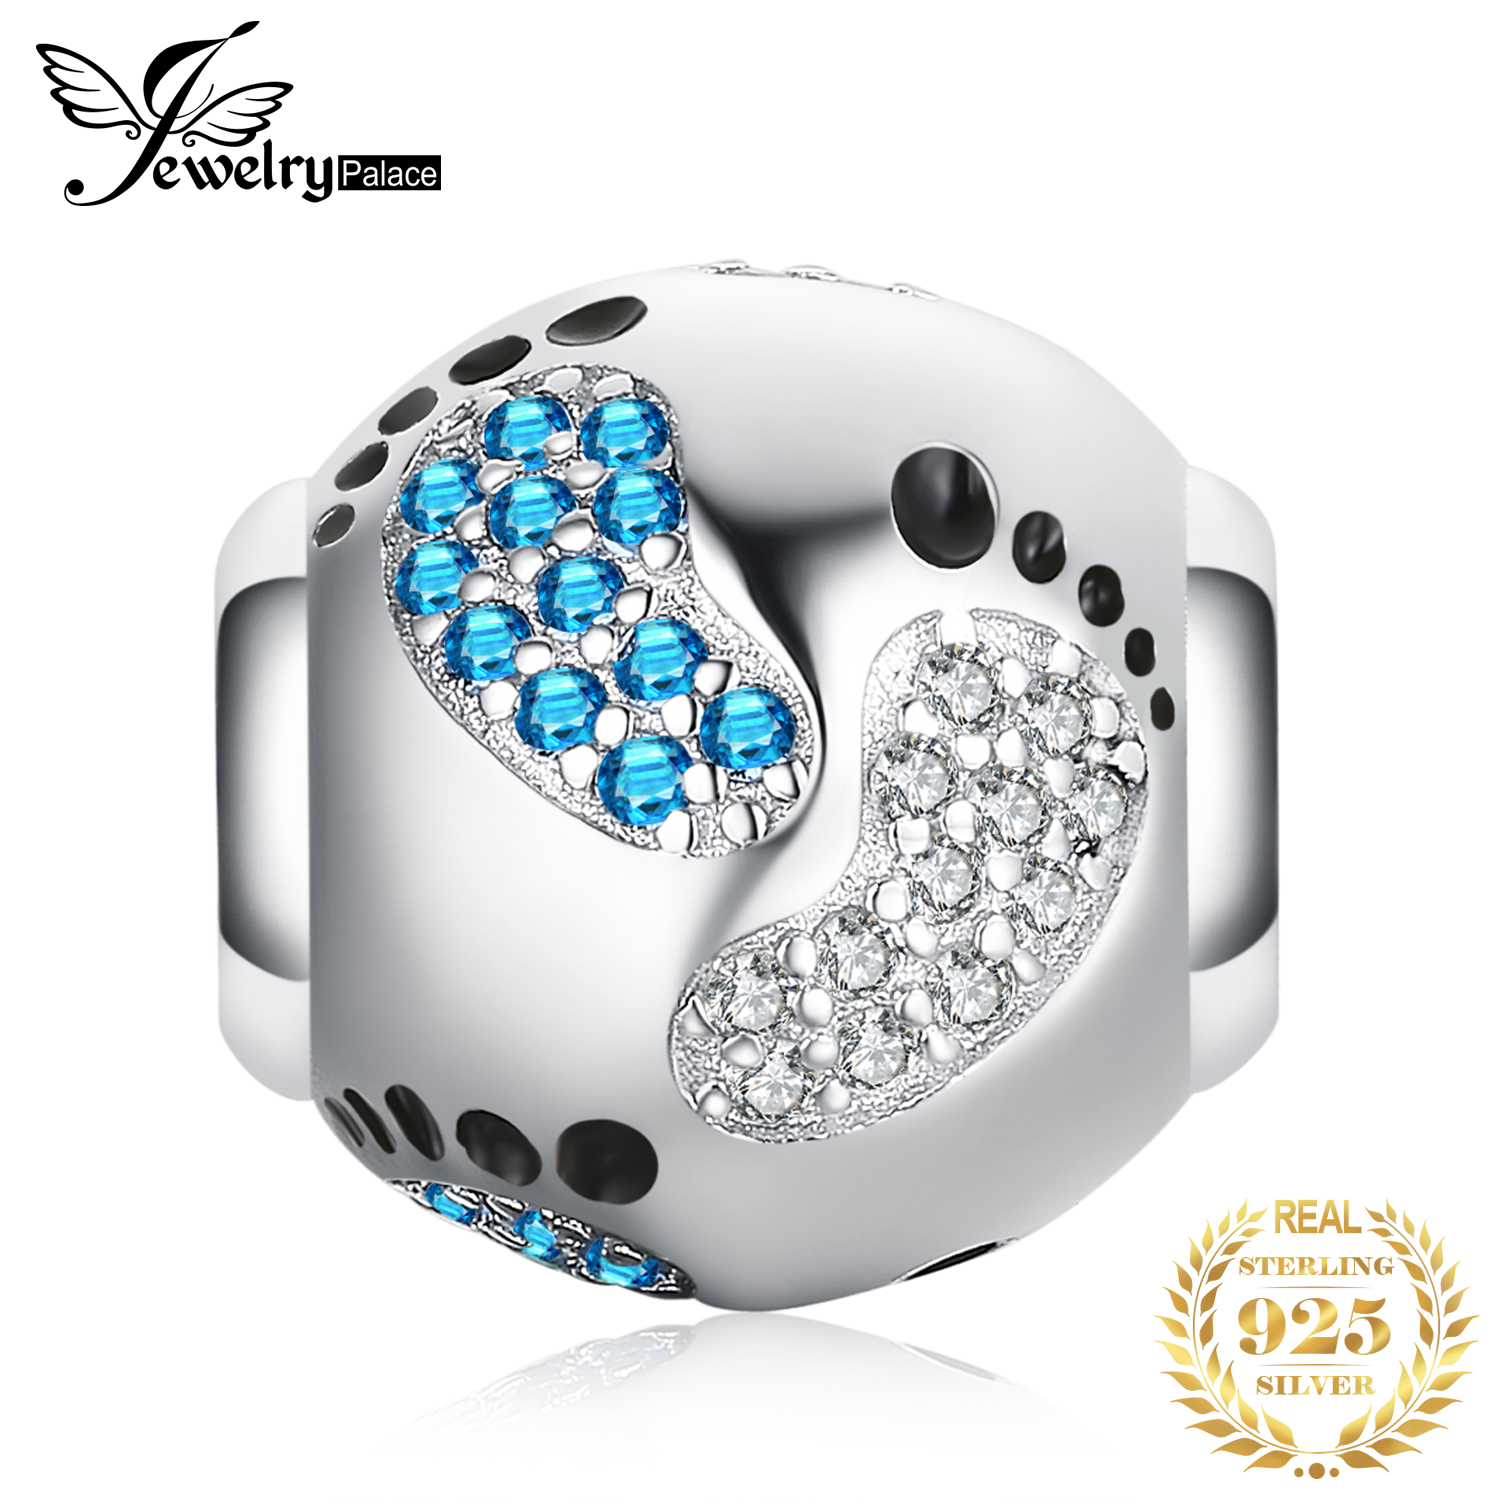 JewelryPalace Footprint 925 Sterling Silver Bead Charms Silver 925 Original For Bracelet Silver 925 Original Bead Jewelry Making